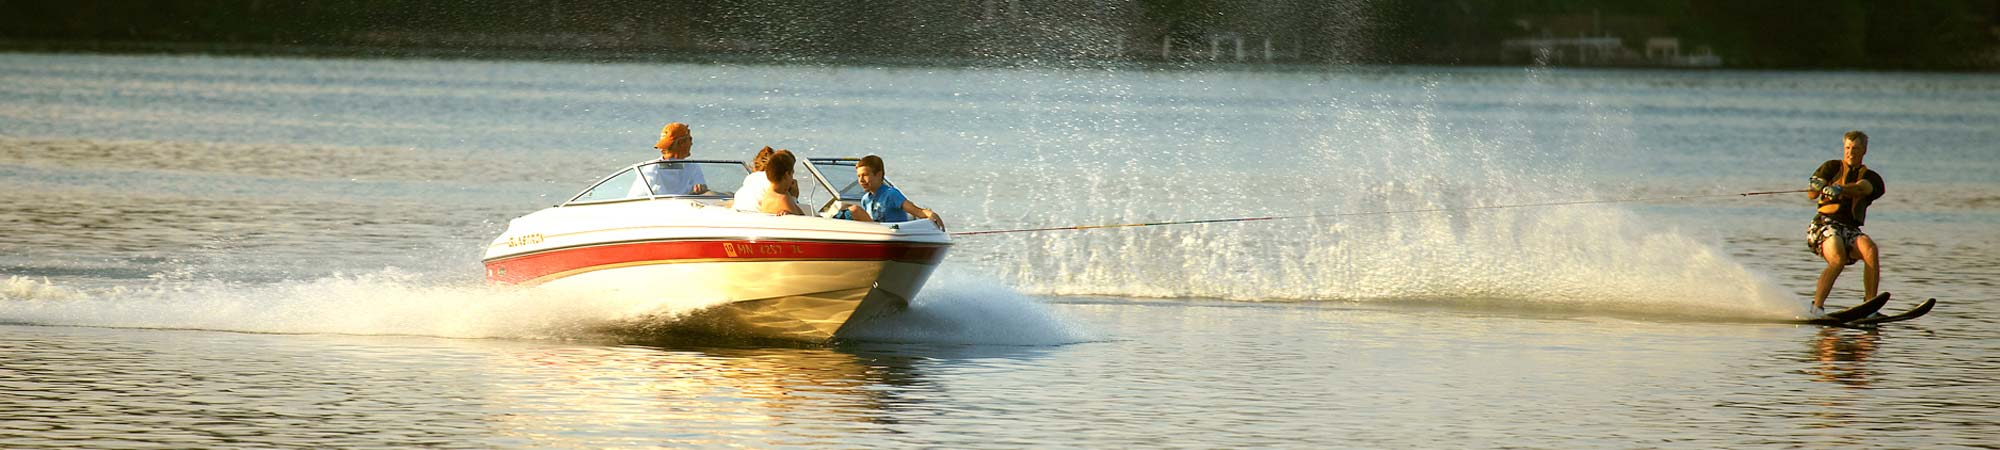 slide-activities-Waterski_2000x450